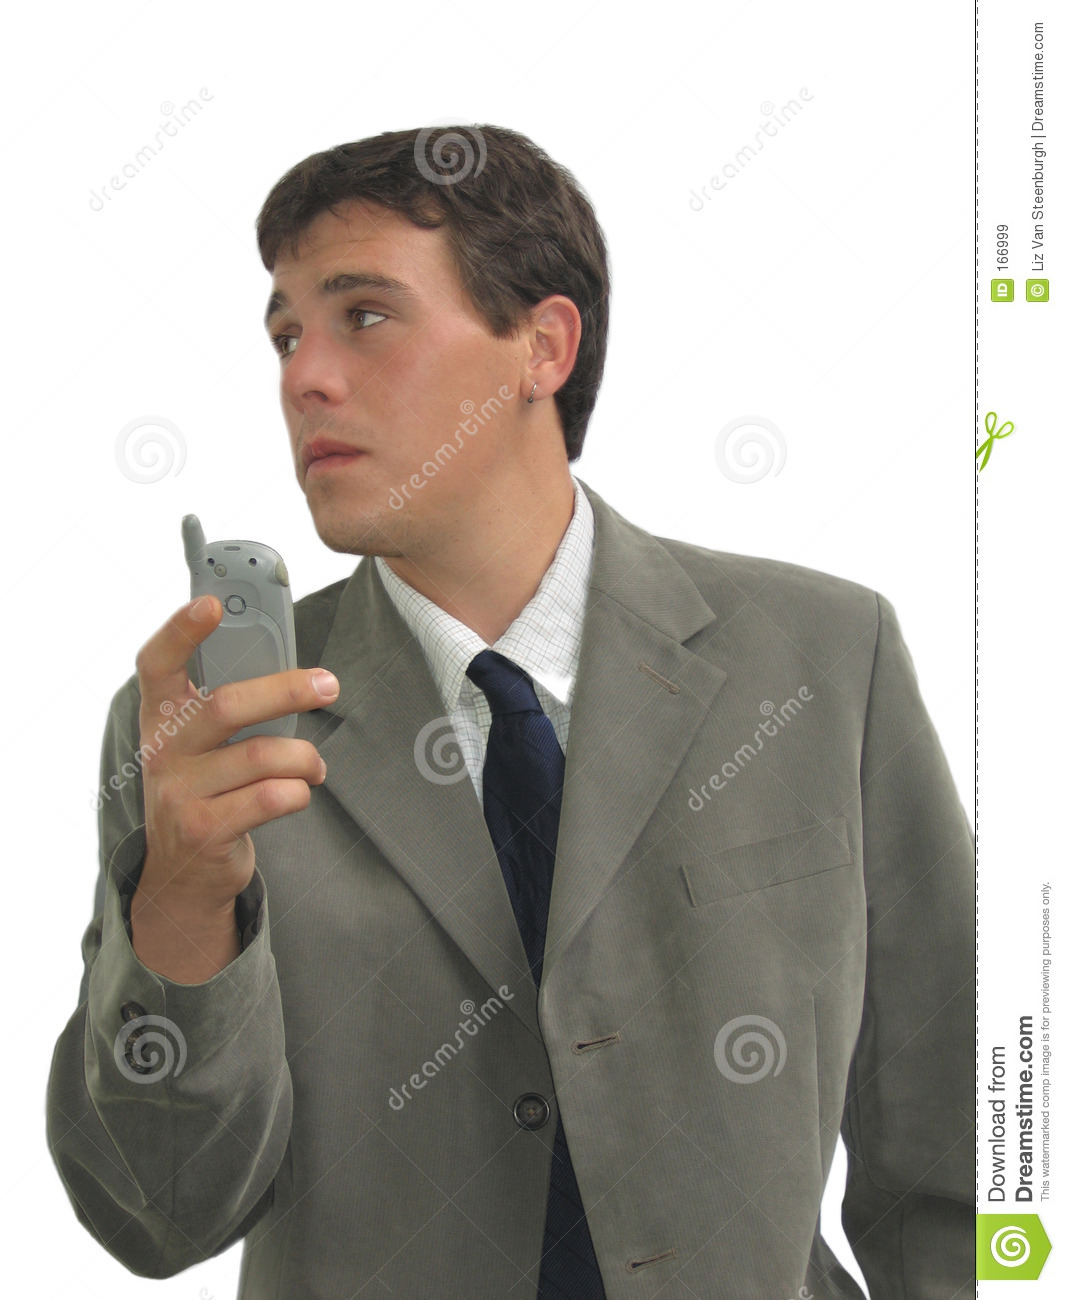 Business Man With Cell